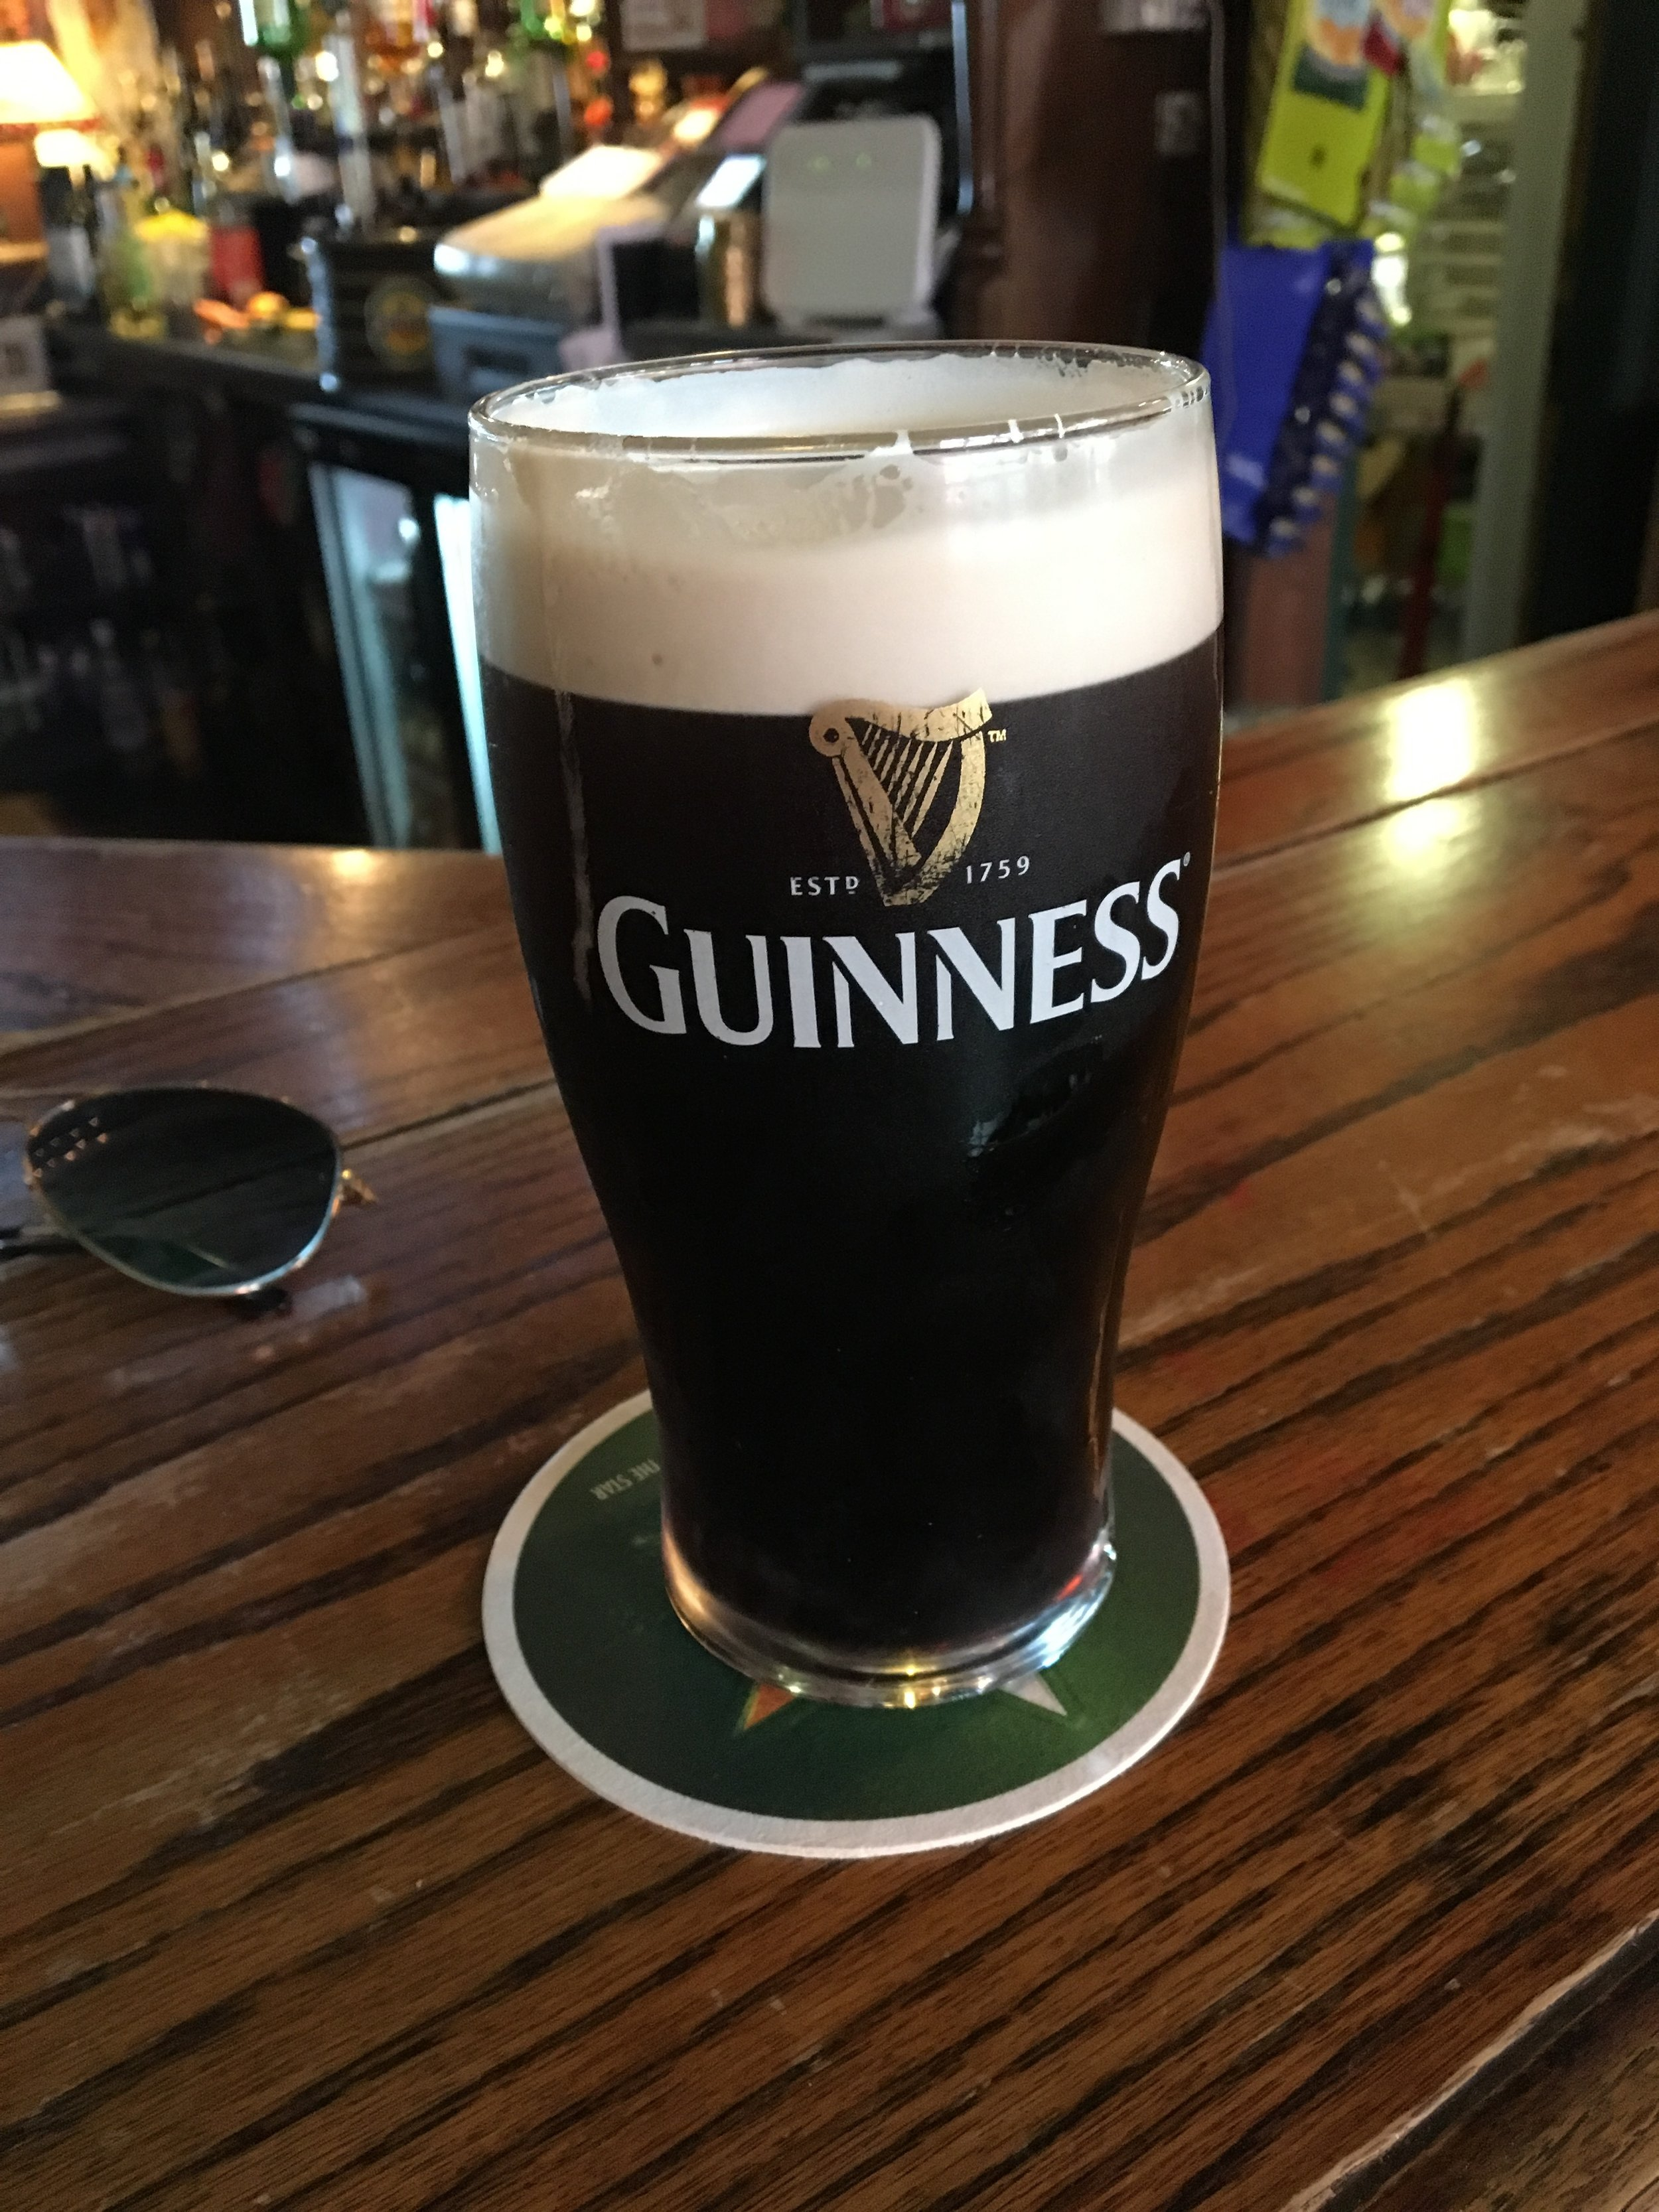 Perhaps the best Guinness I've ever had - somewhere in Ireland...